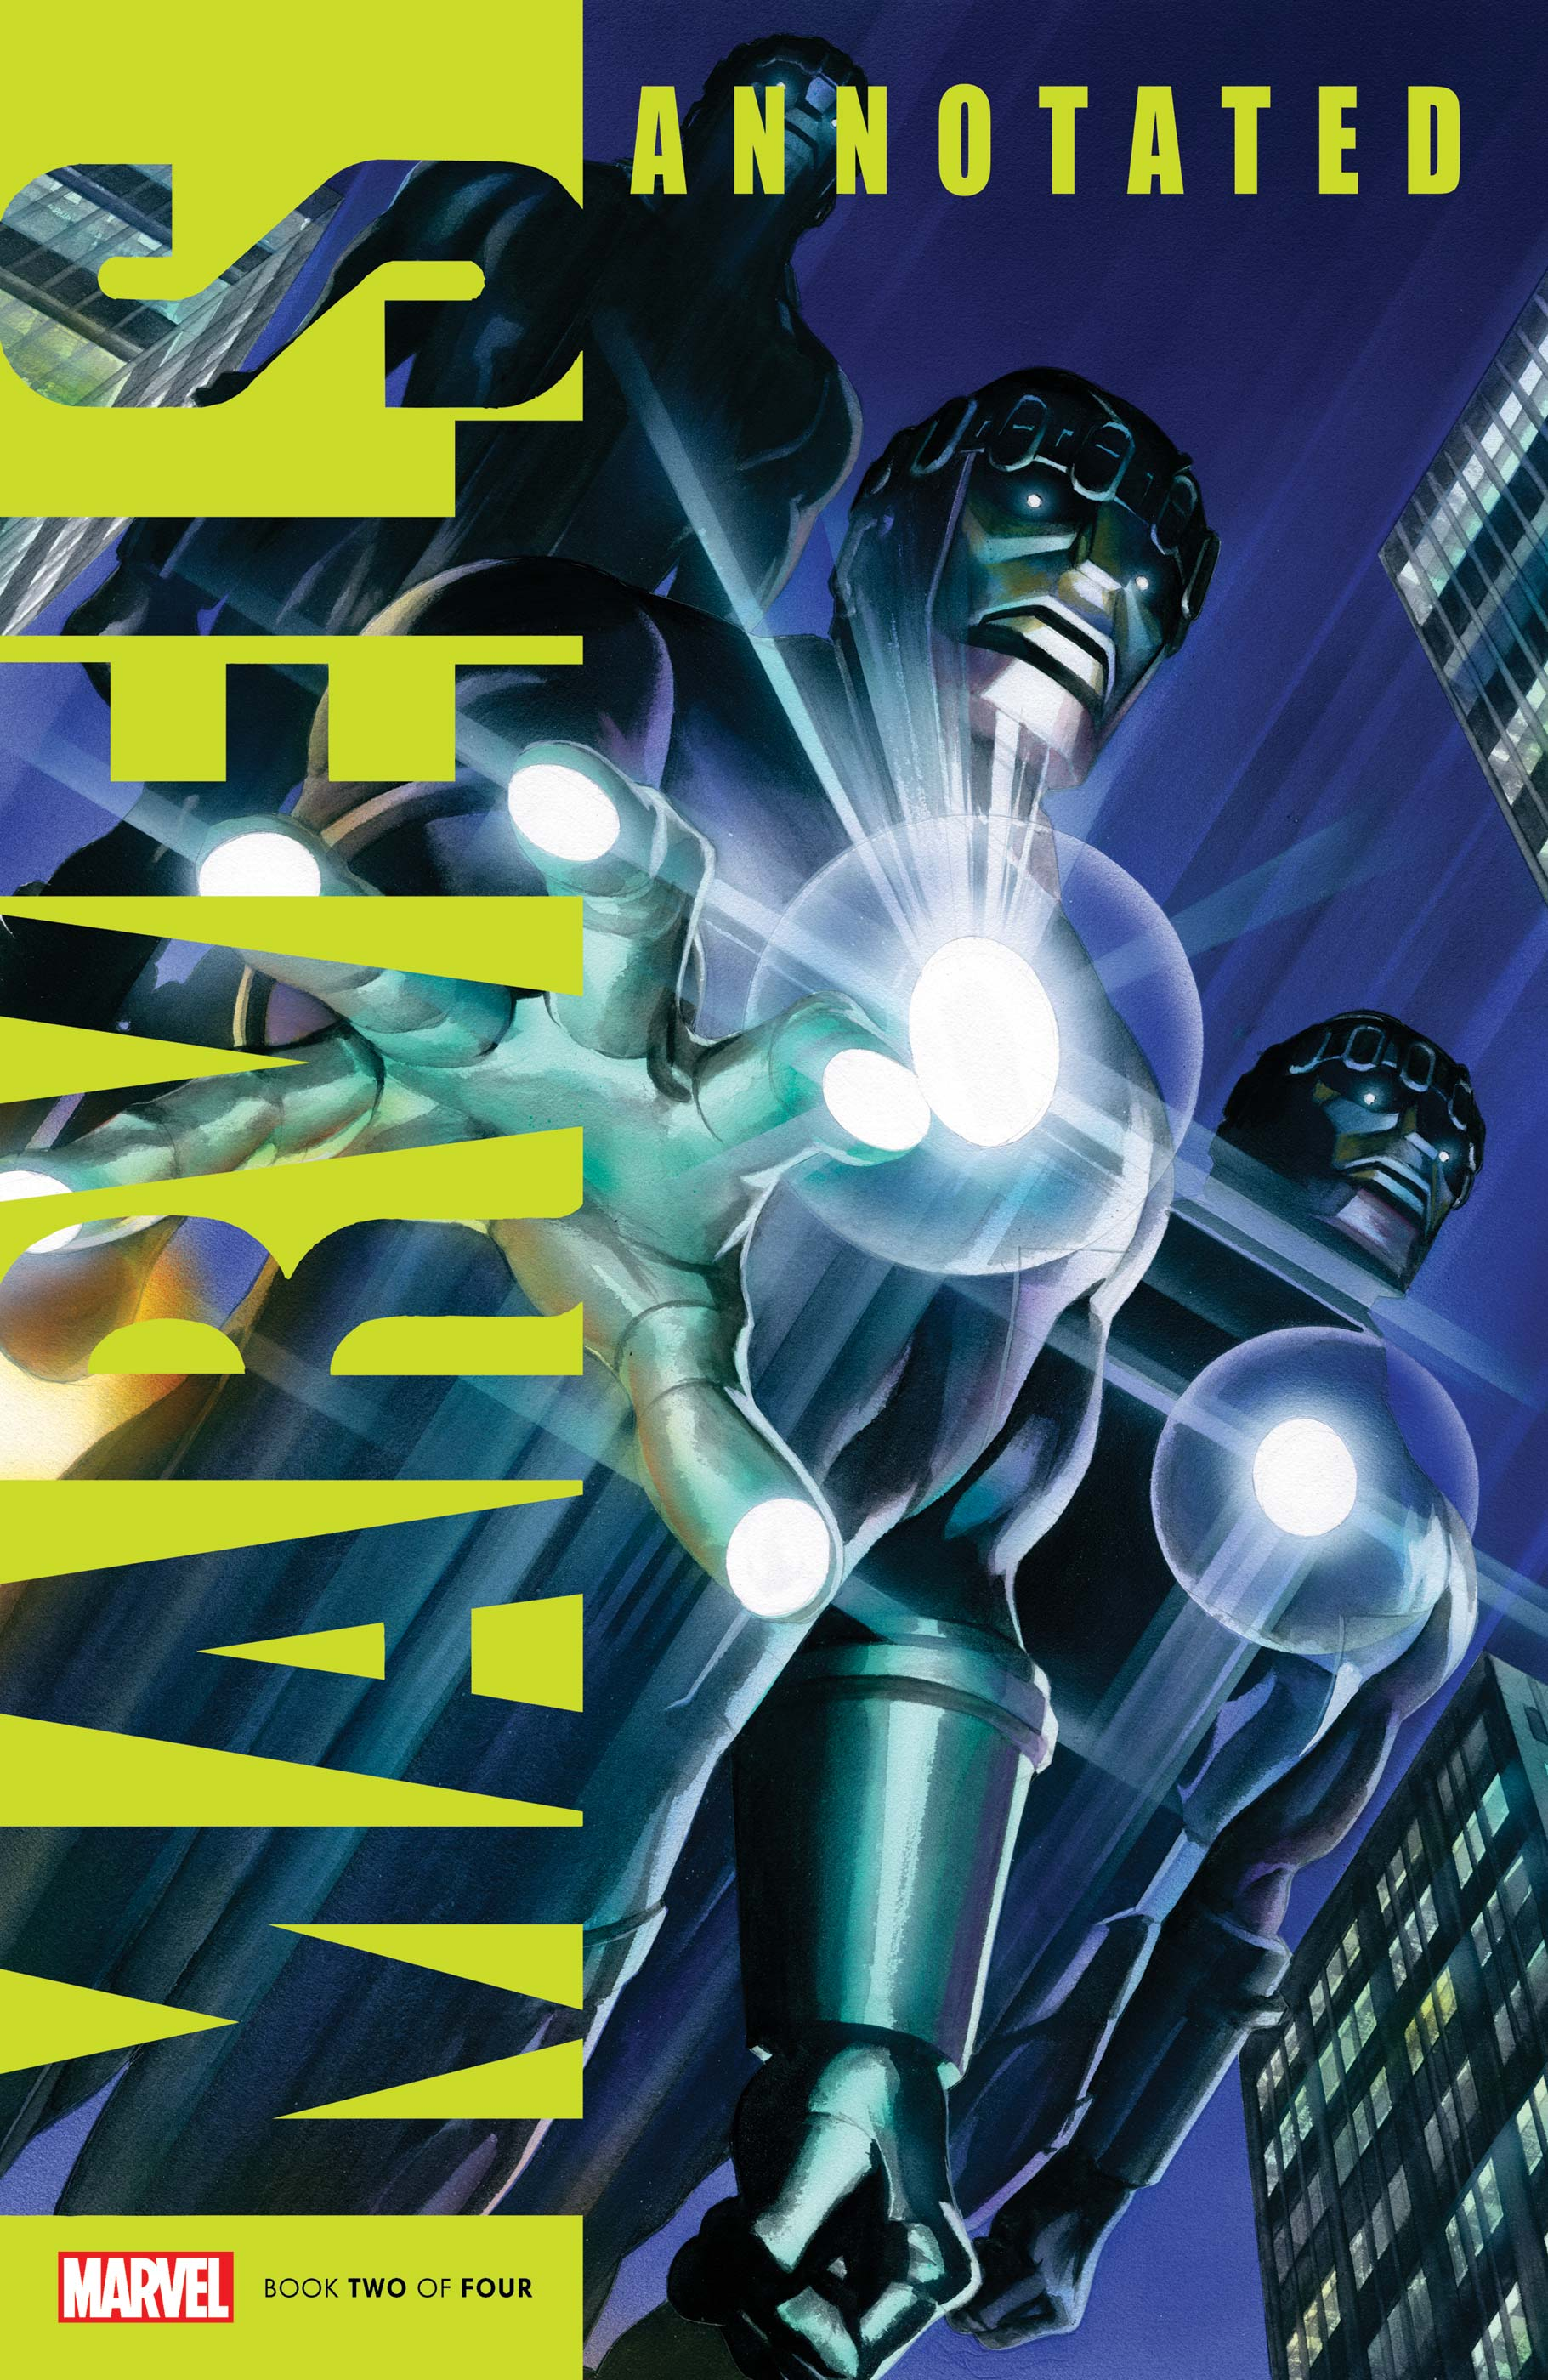 Marvels Annotated (2019) #2